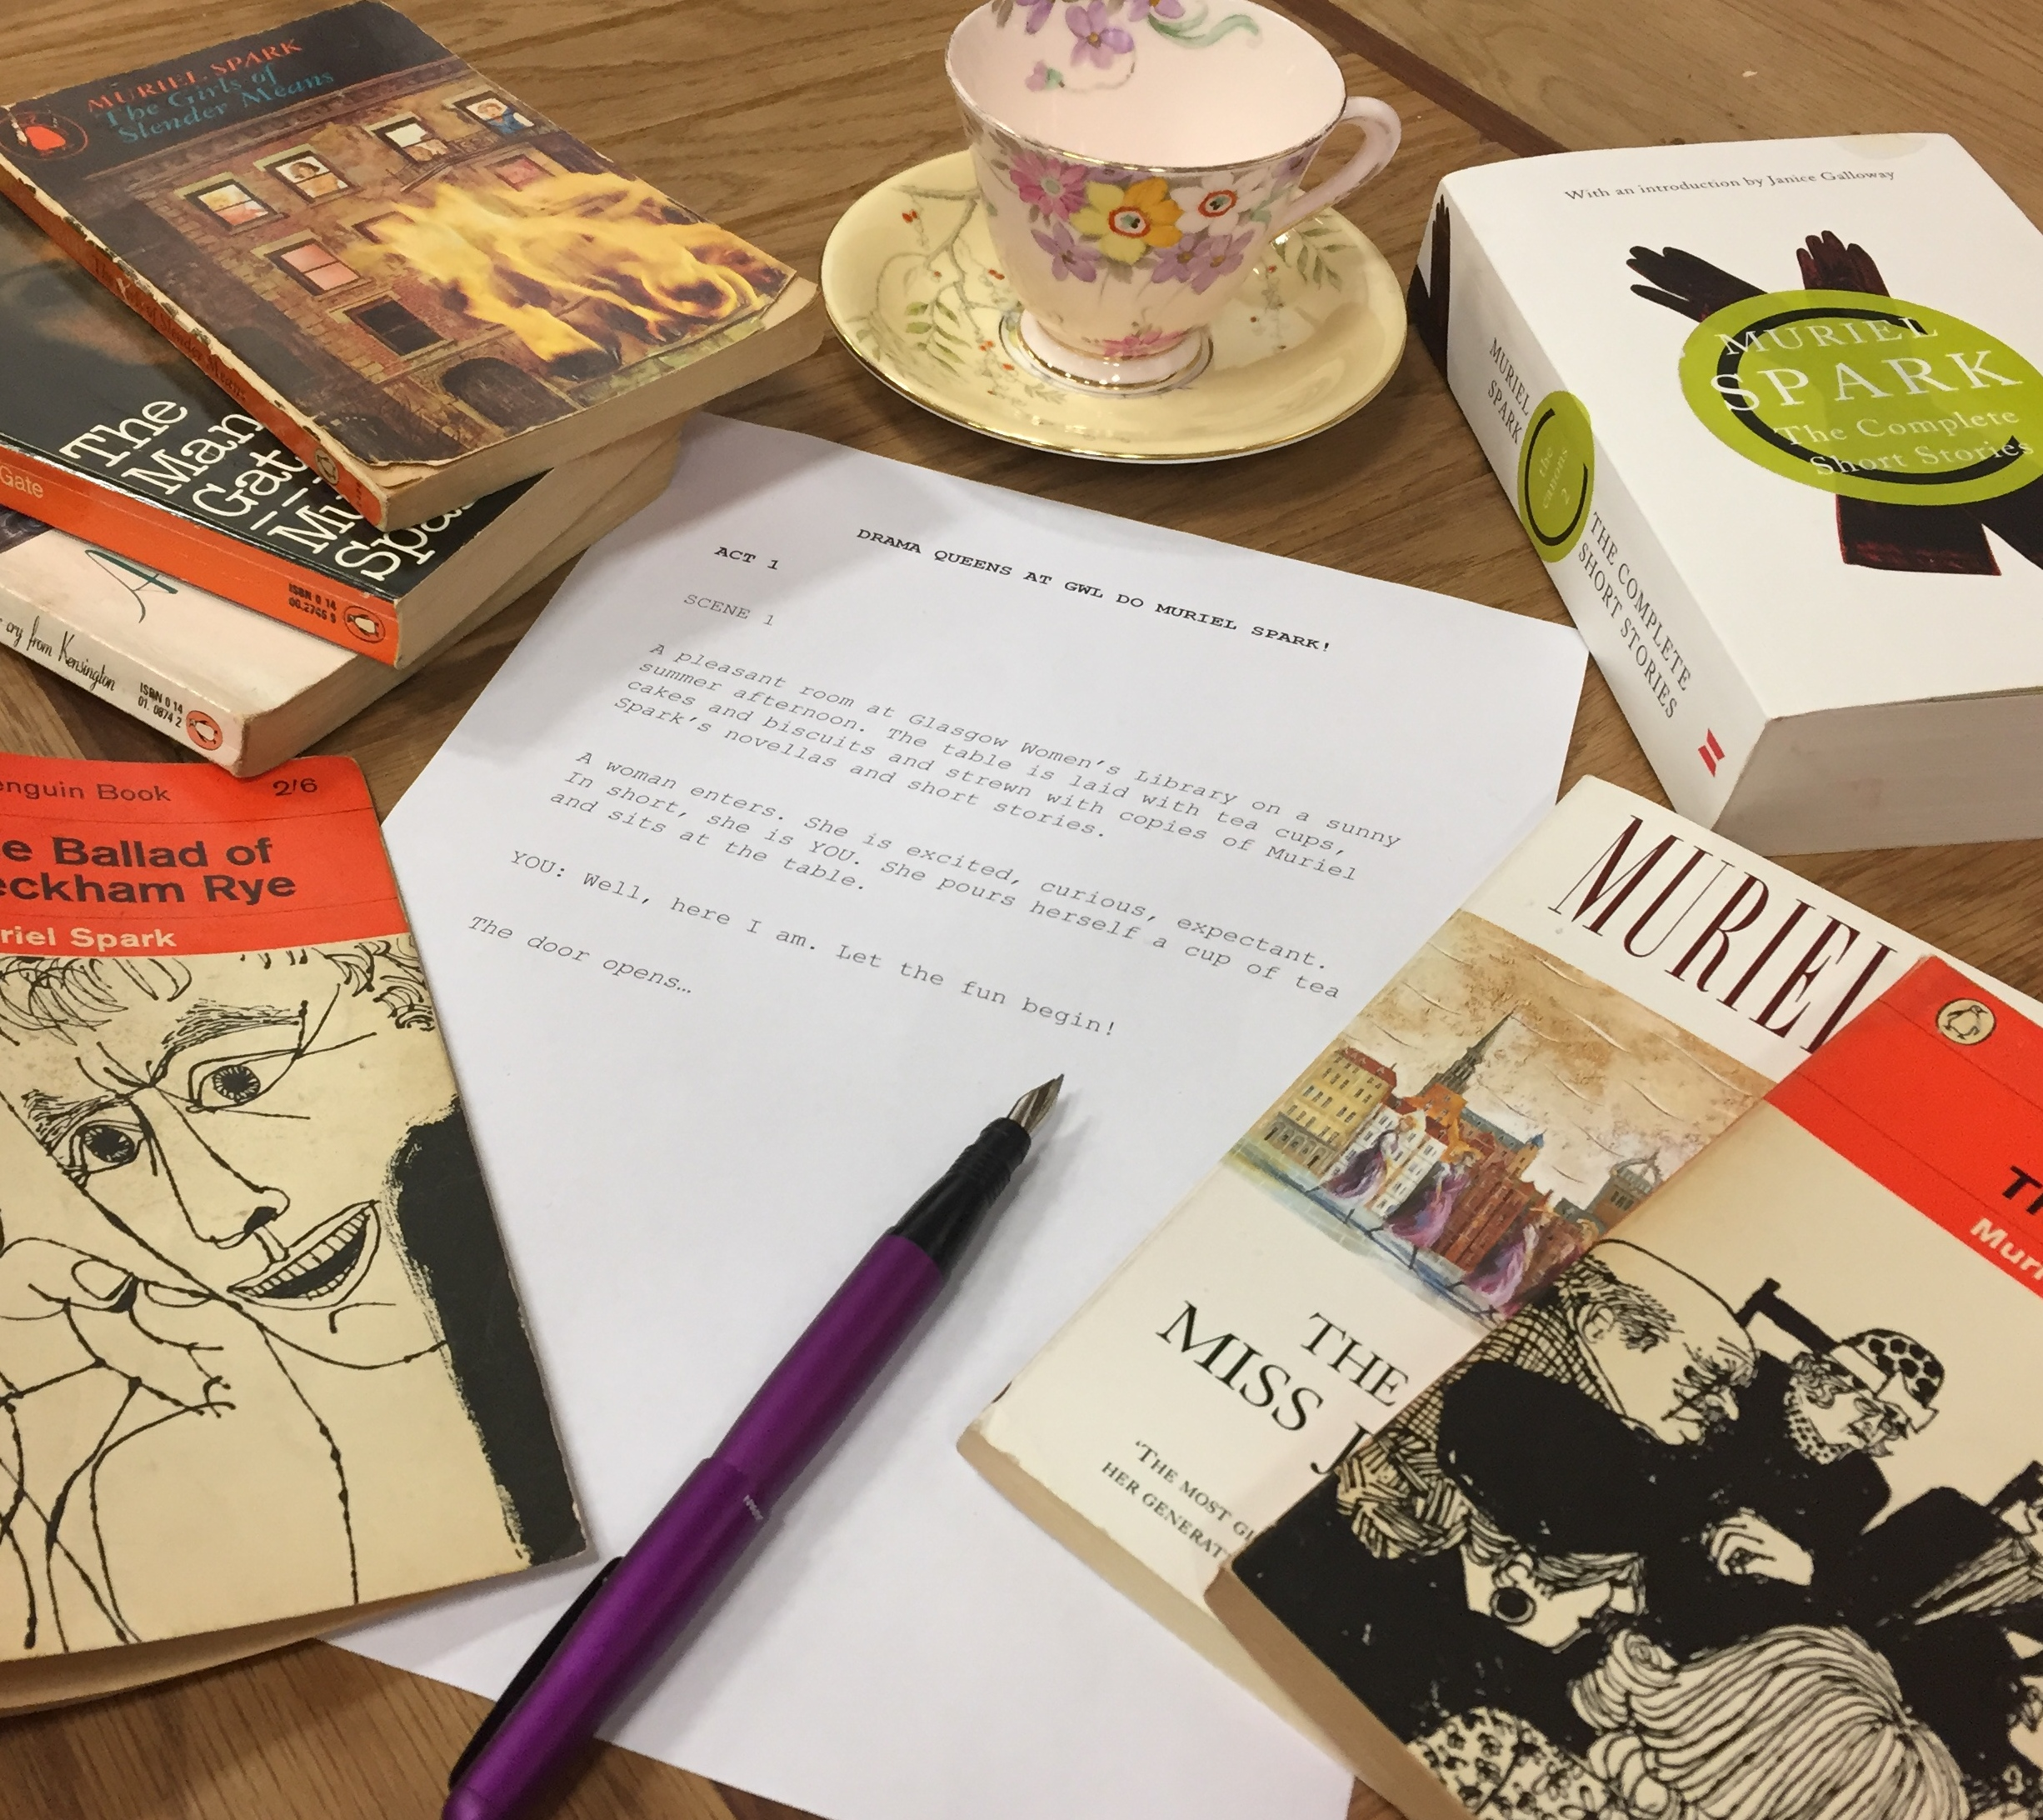 Photograph of a table of Muriel Spark novels surrounding a piece of paper with the beginnings of a script written about a women coming to the library for Drama Queens.